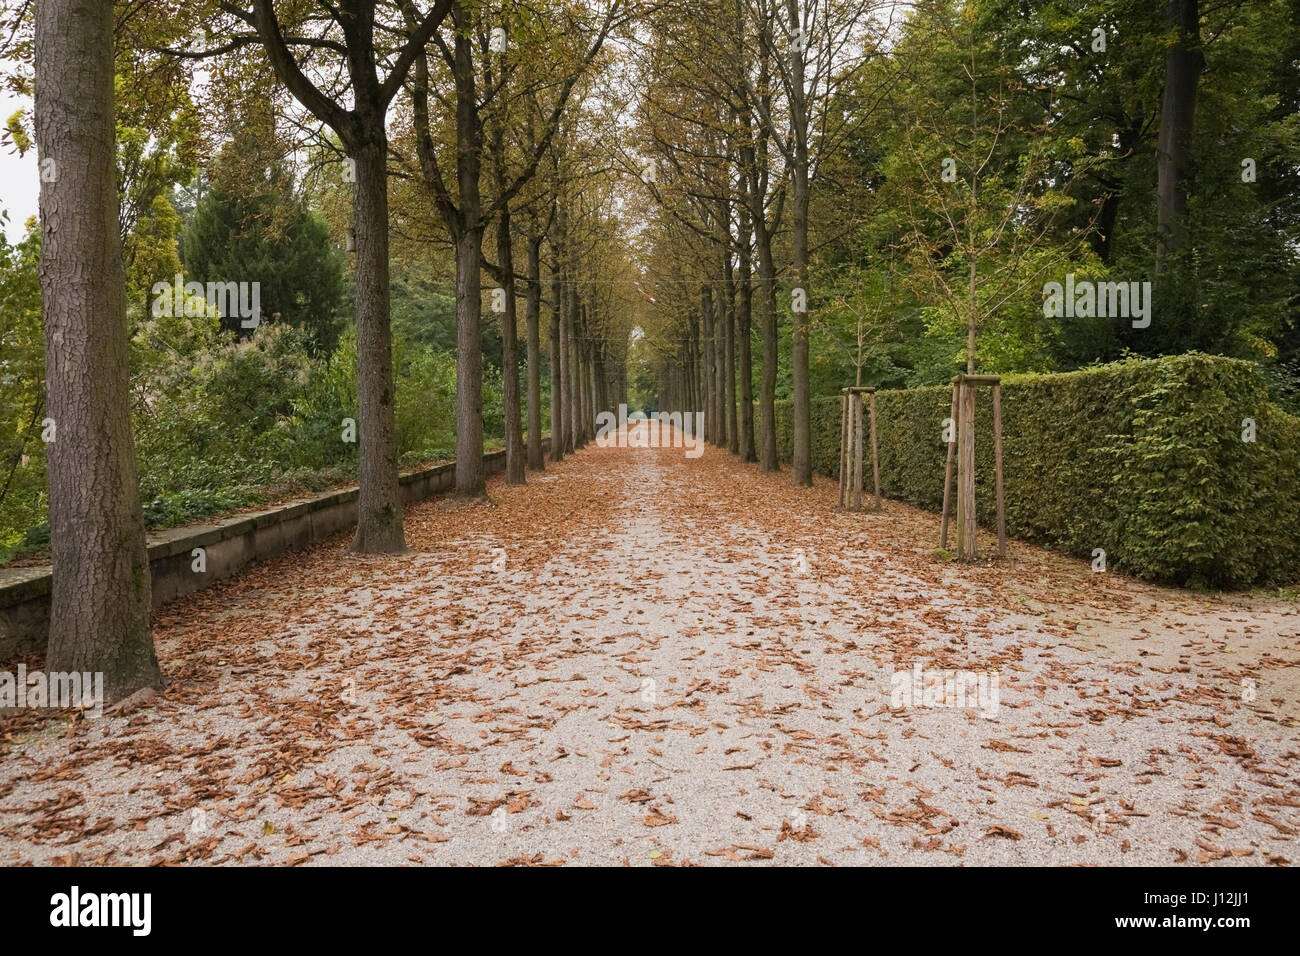 Gravel alley lined with rows of Castanea sativa - Chestnut trees in the Schwetzingen palace garden in late summer, - Stock Image